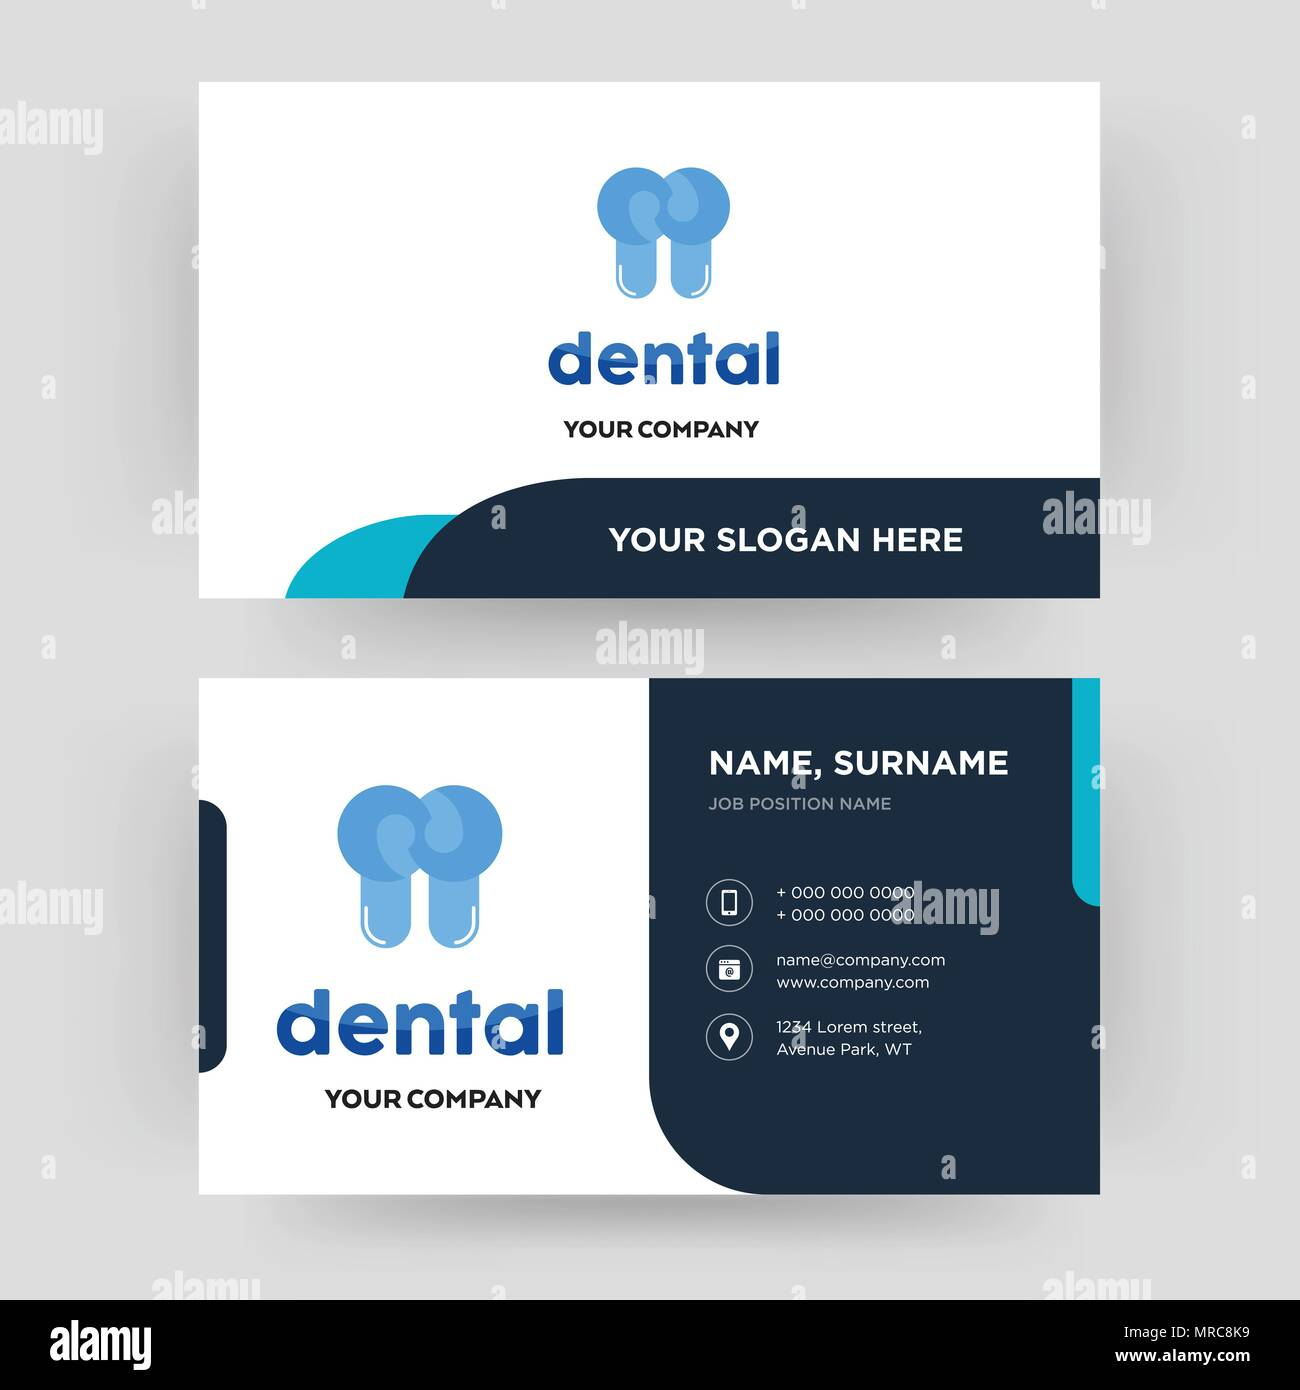 dental business card design template visiting for your company